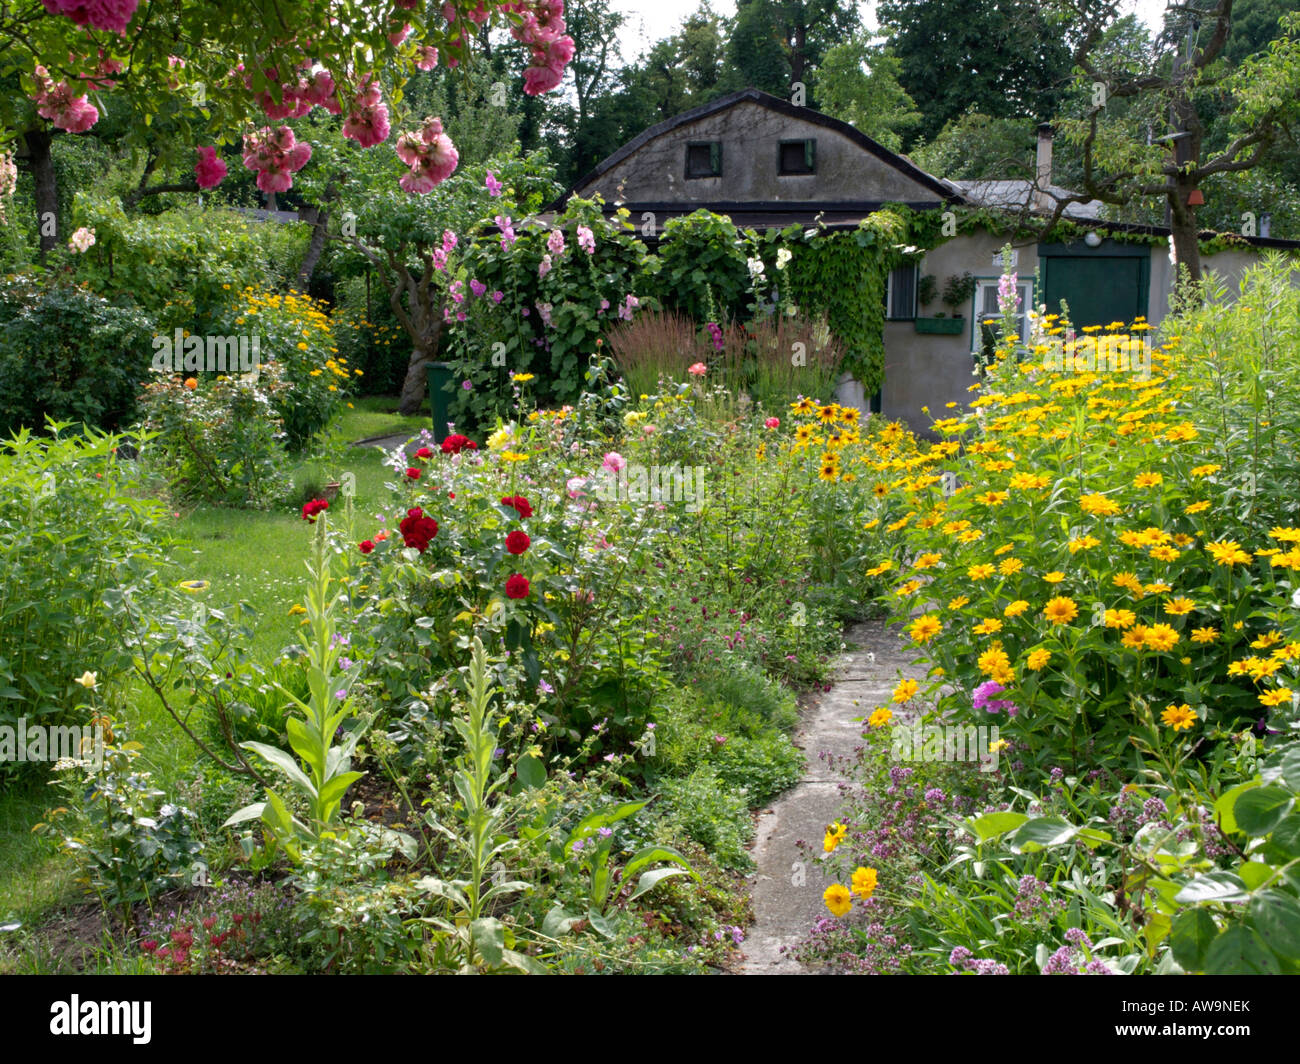 Old garden house - Allotment Garden With Old Garden House